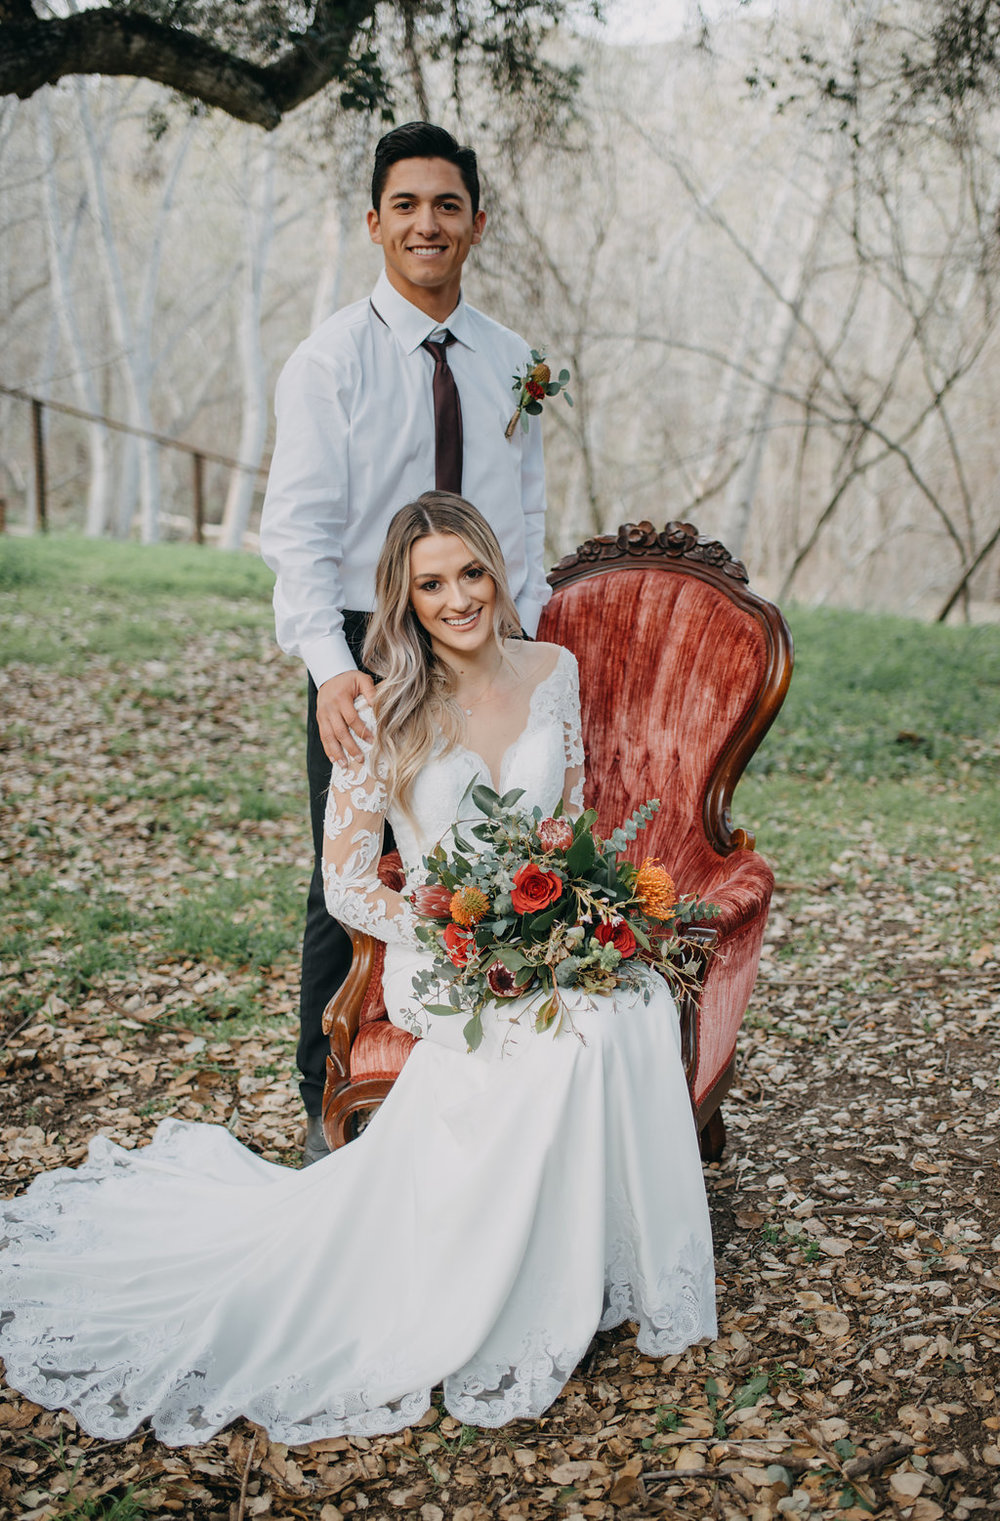 boho wedding photo idea outdoors natural wedding photos red velvet chair seasonal flowers